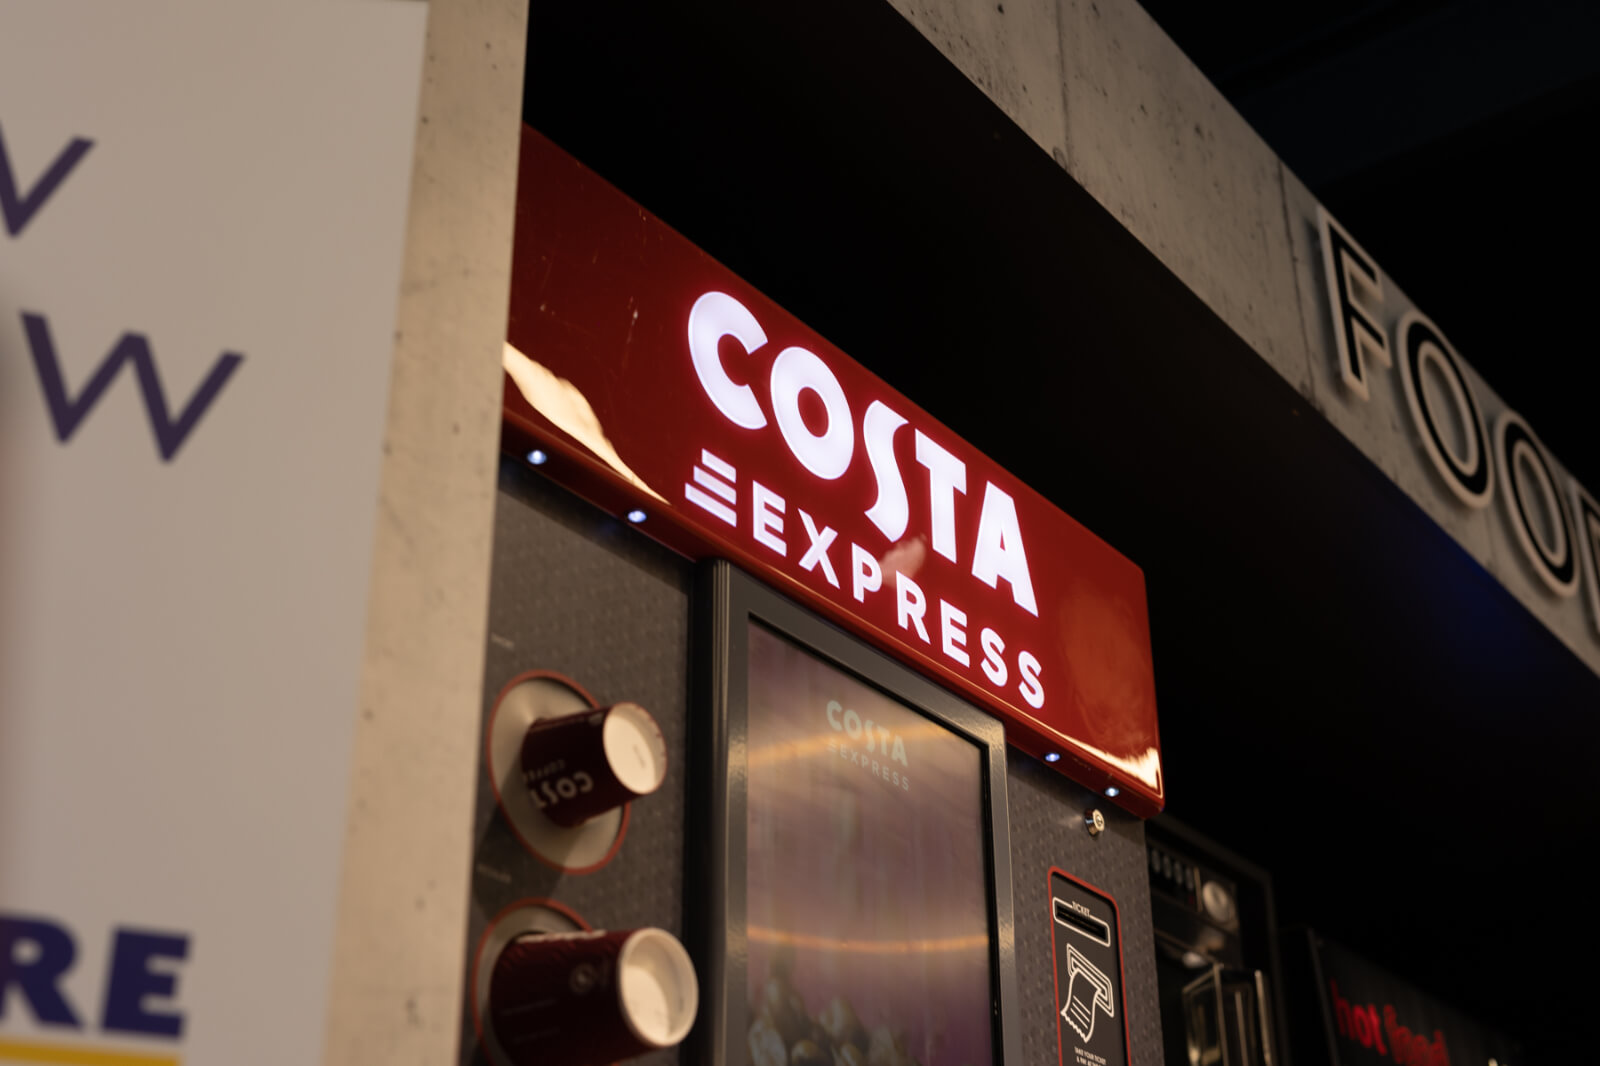 Costa Coffee at Ascona Garages